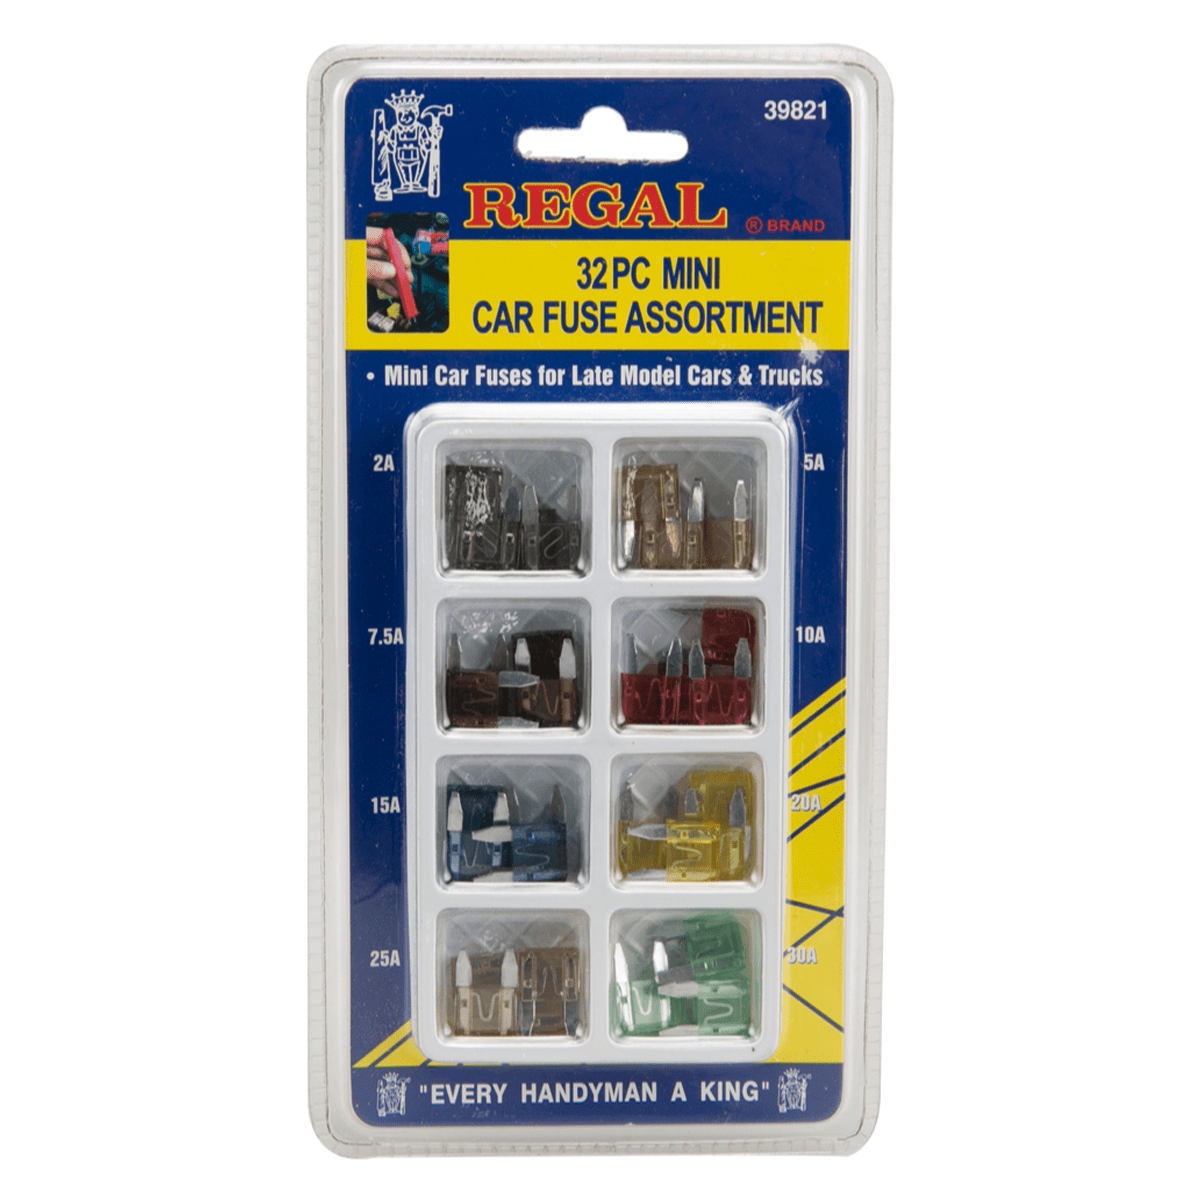 Regal Mini Car Fuse Assortment Kit (32 pc)